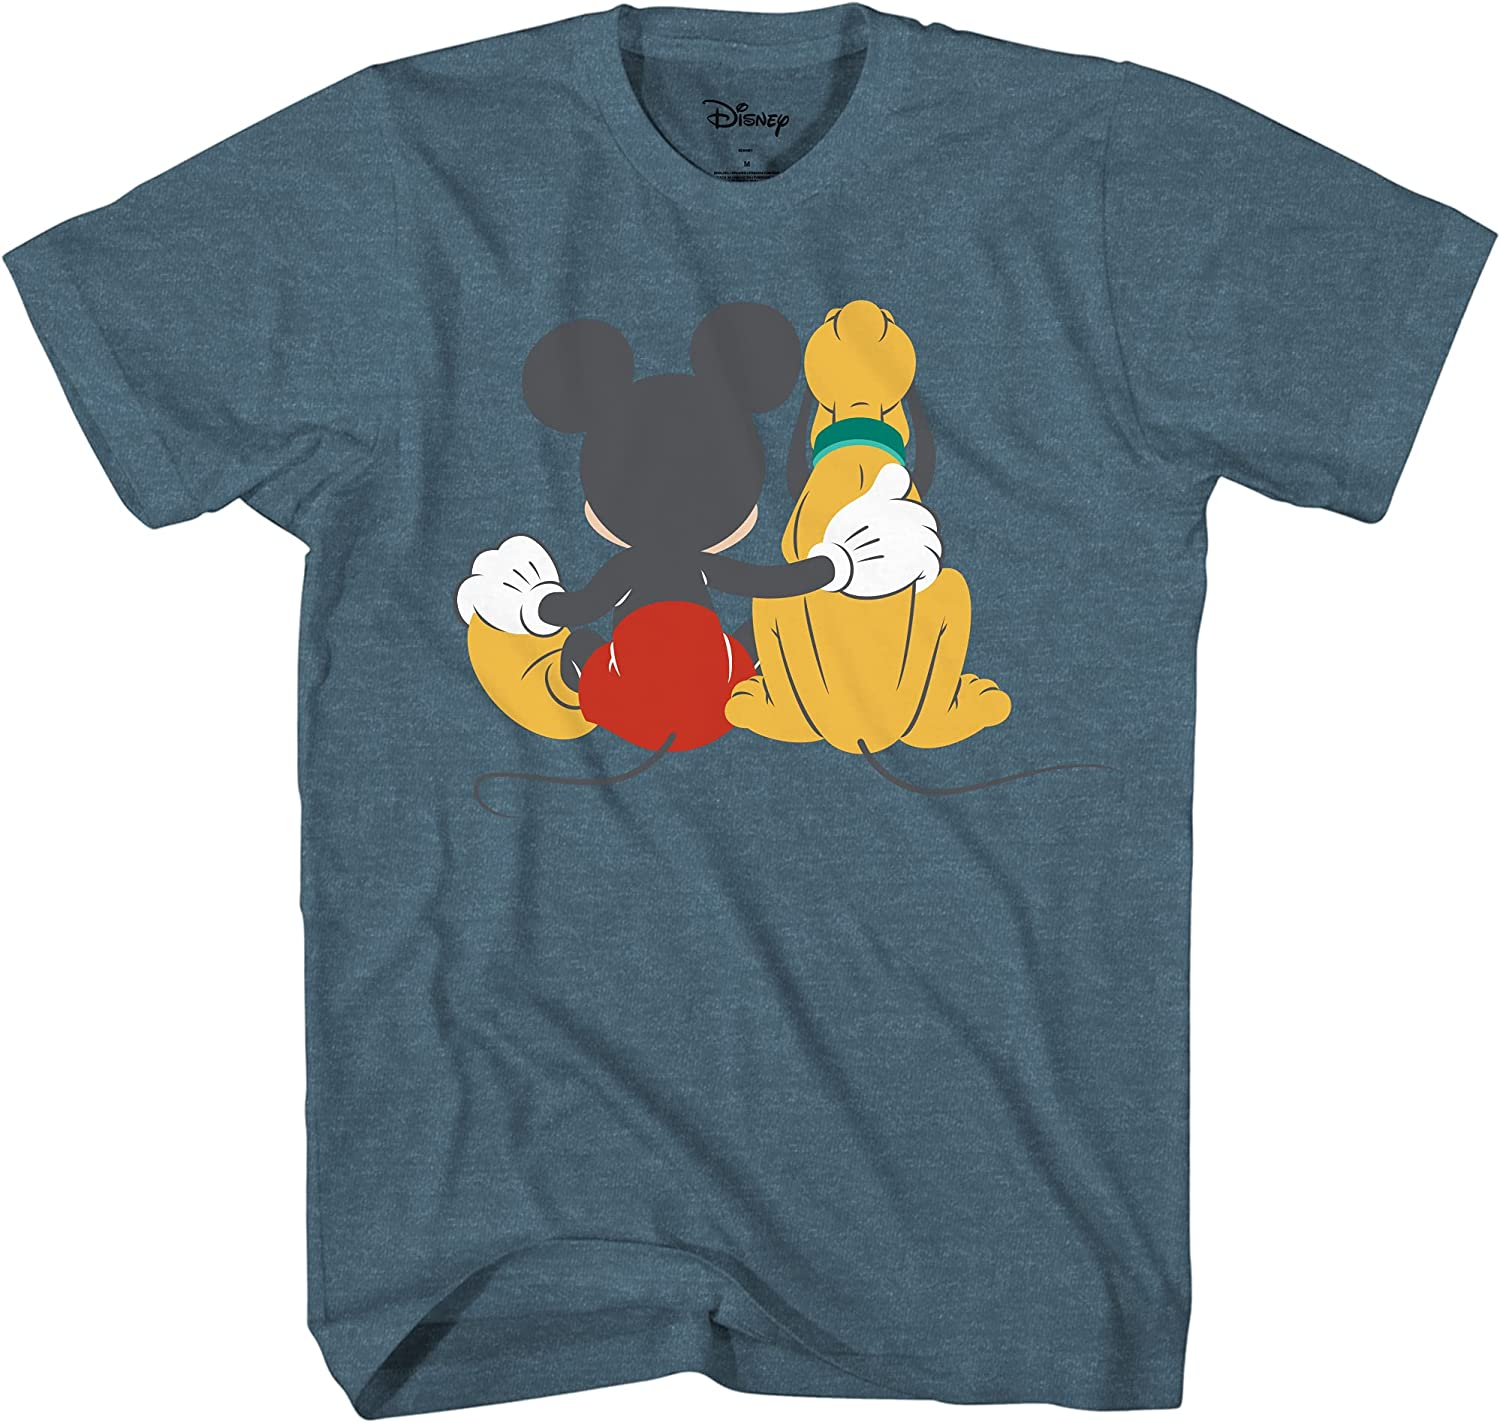 Disney Mickey and Pluto Friends Best Adult T-Shirt 2021new shipping free shipping Ranking TOP13